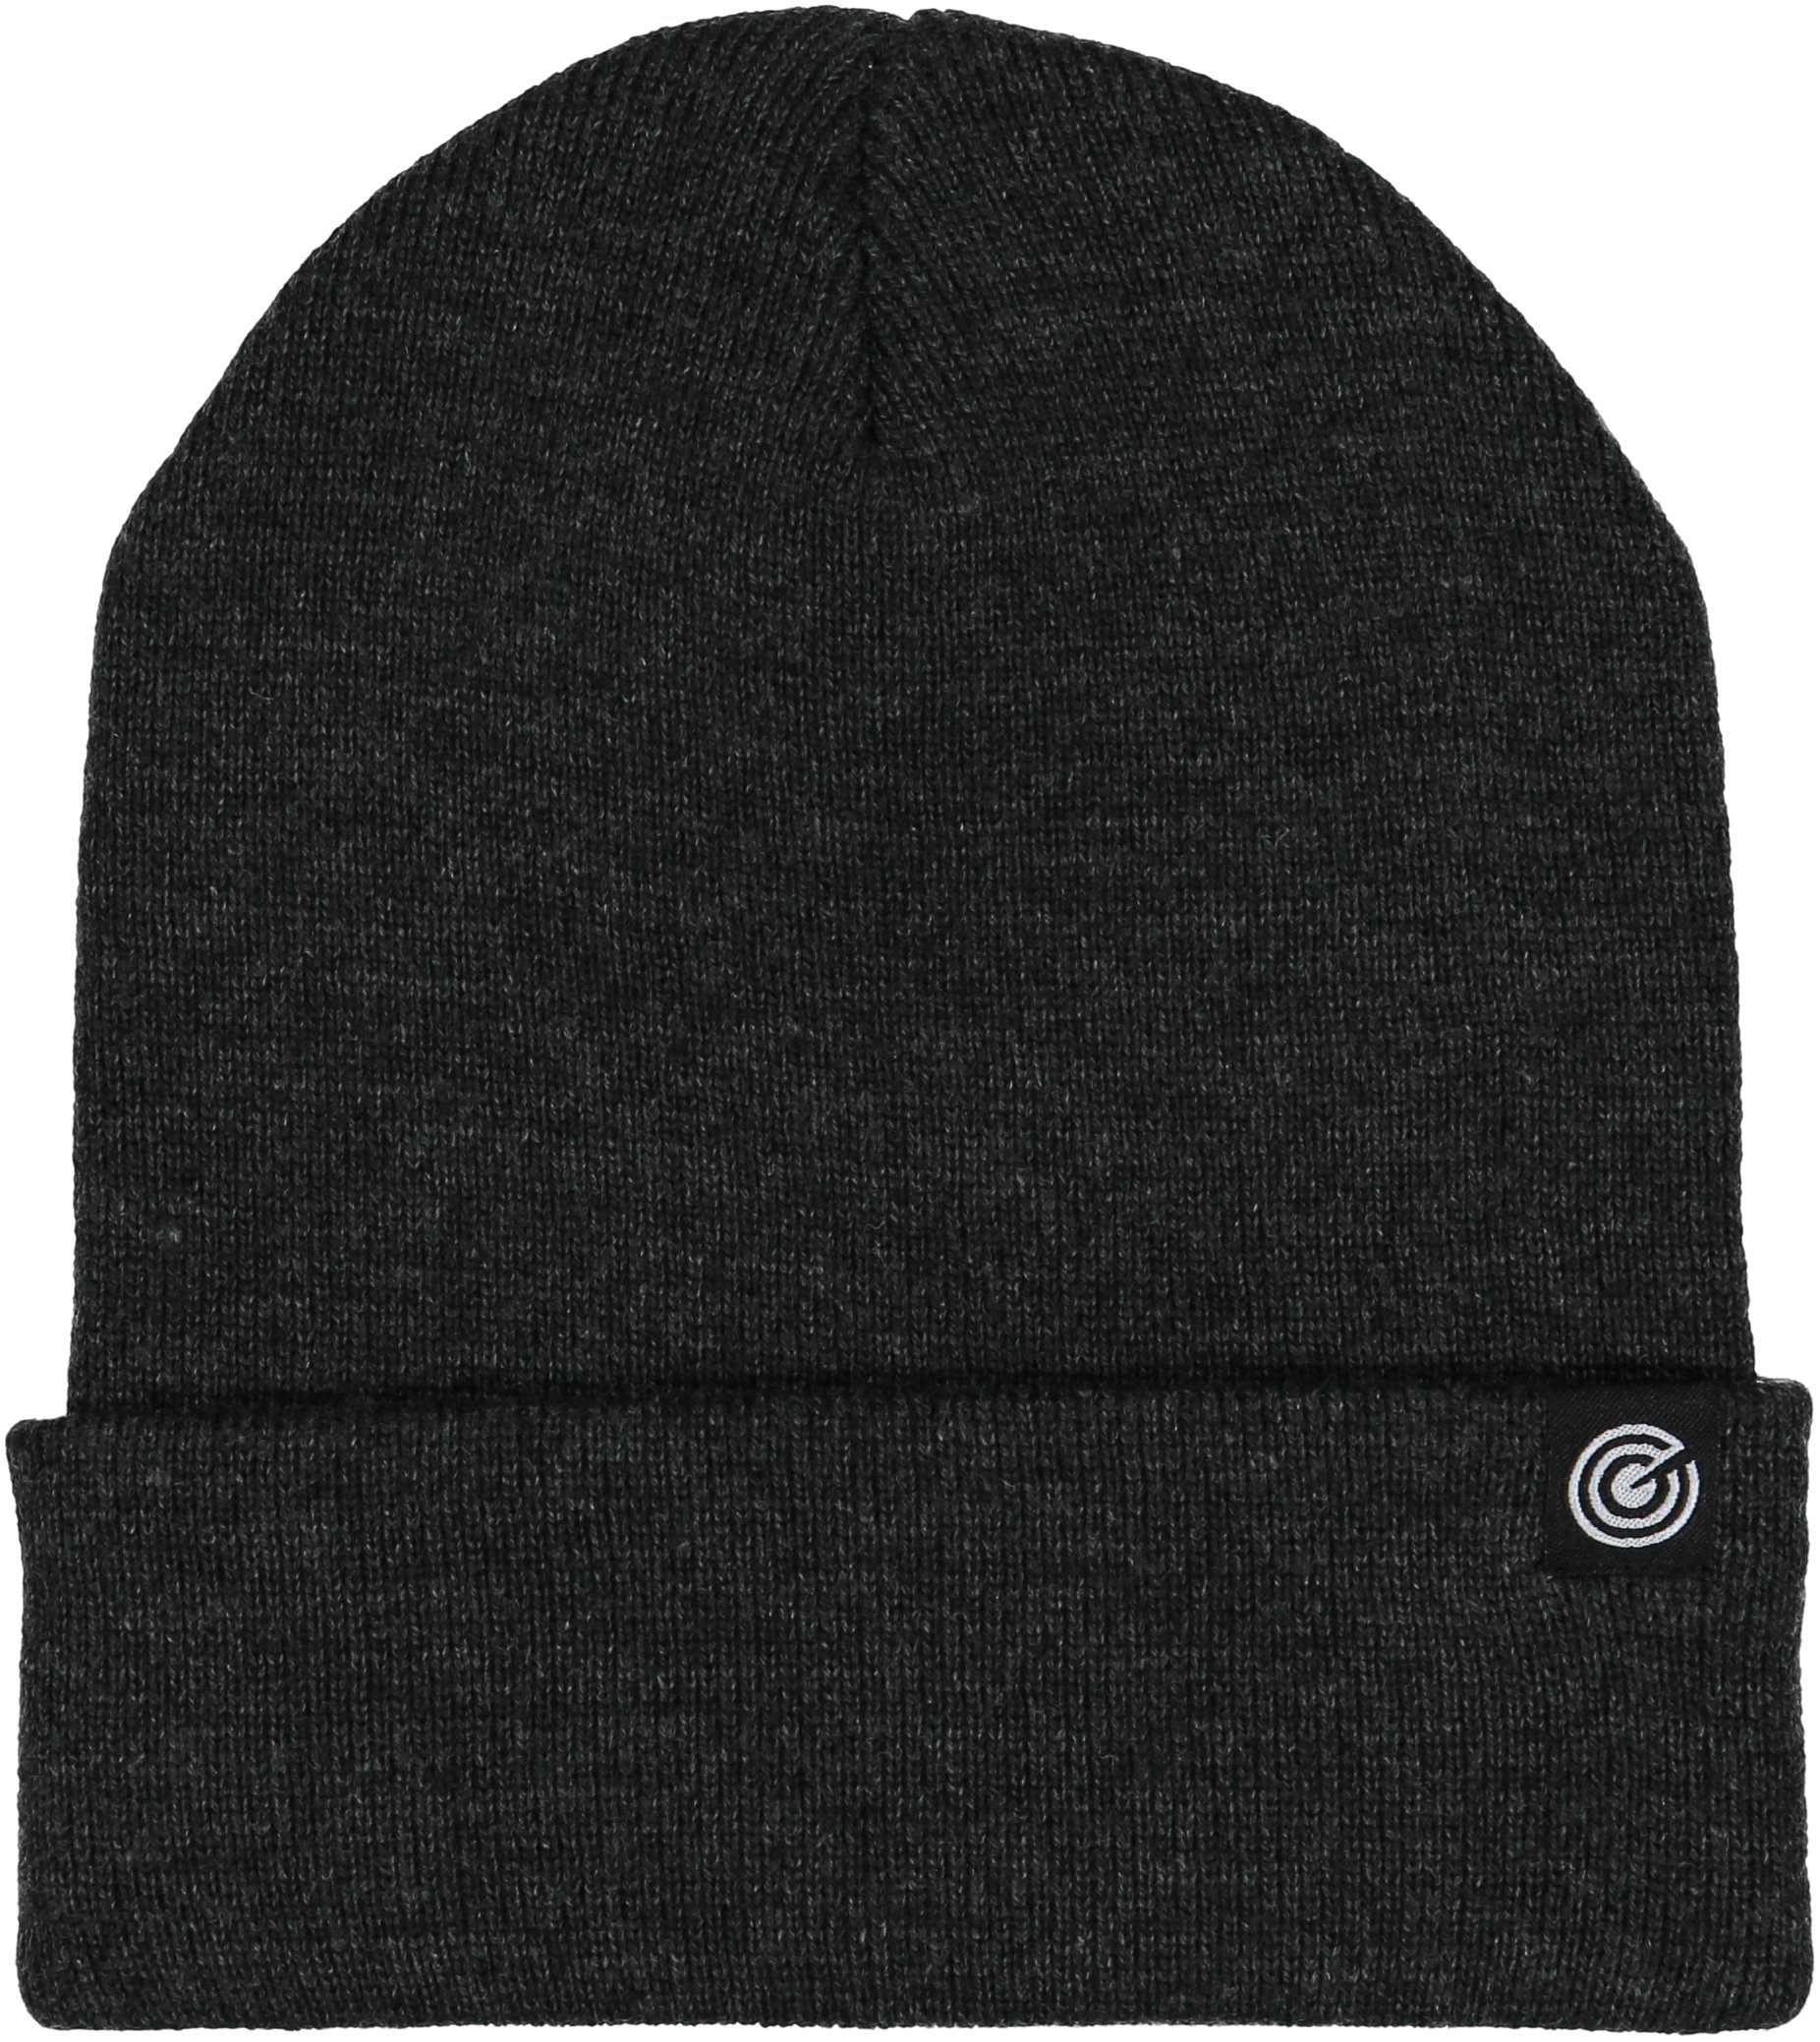 Cuffed Beanie - Warm Daily Beanie Hat with Foldover Cuff - Stylish Winter Colors,Charcoal Grey,One Size